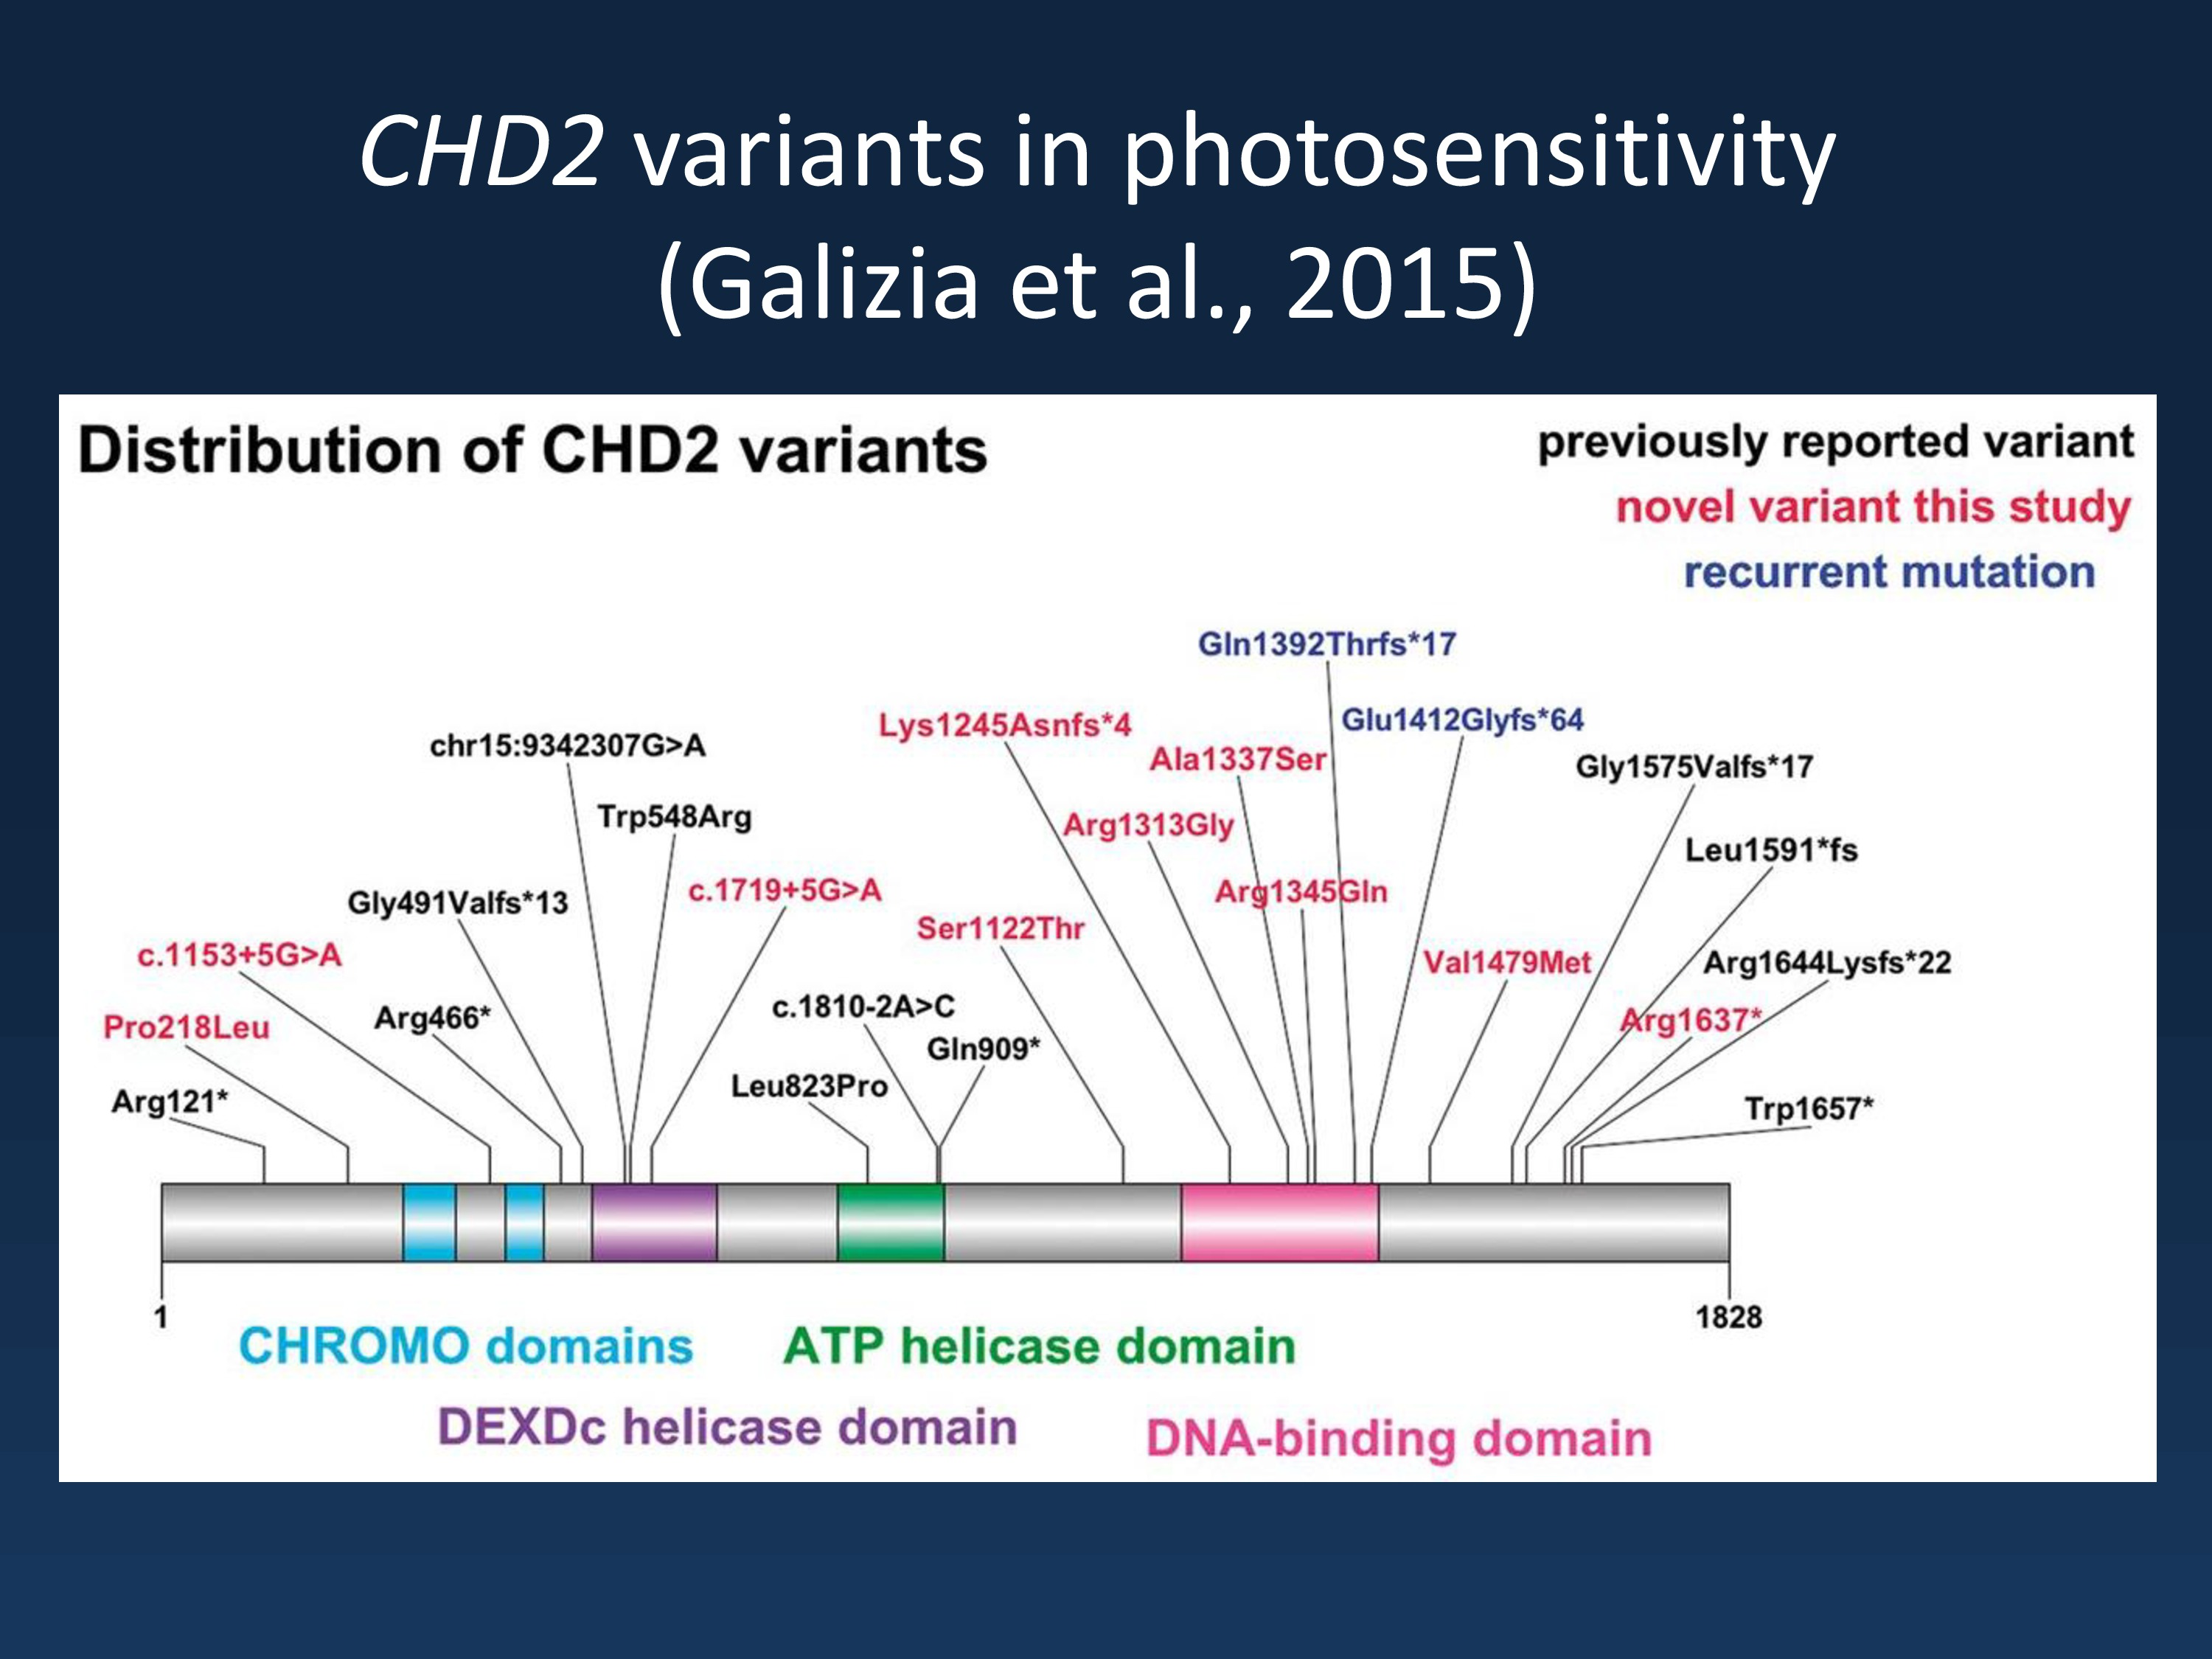 Schematic of CHD2 illustrating its functional (chromo, DEXDc, DNA-binding and ATP helicase) domains, the location of previously-reported variants and the unique variants in both cases and controls identified in this study (modified under a Creative Commons Licence from http://brain.oxfordjournals.org/content/early/2015/03/16/brain.awv052).